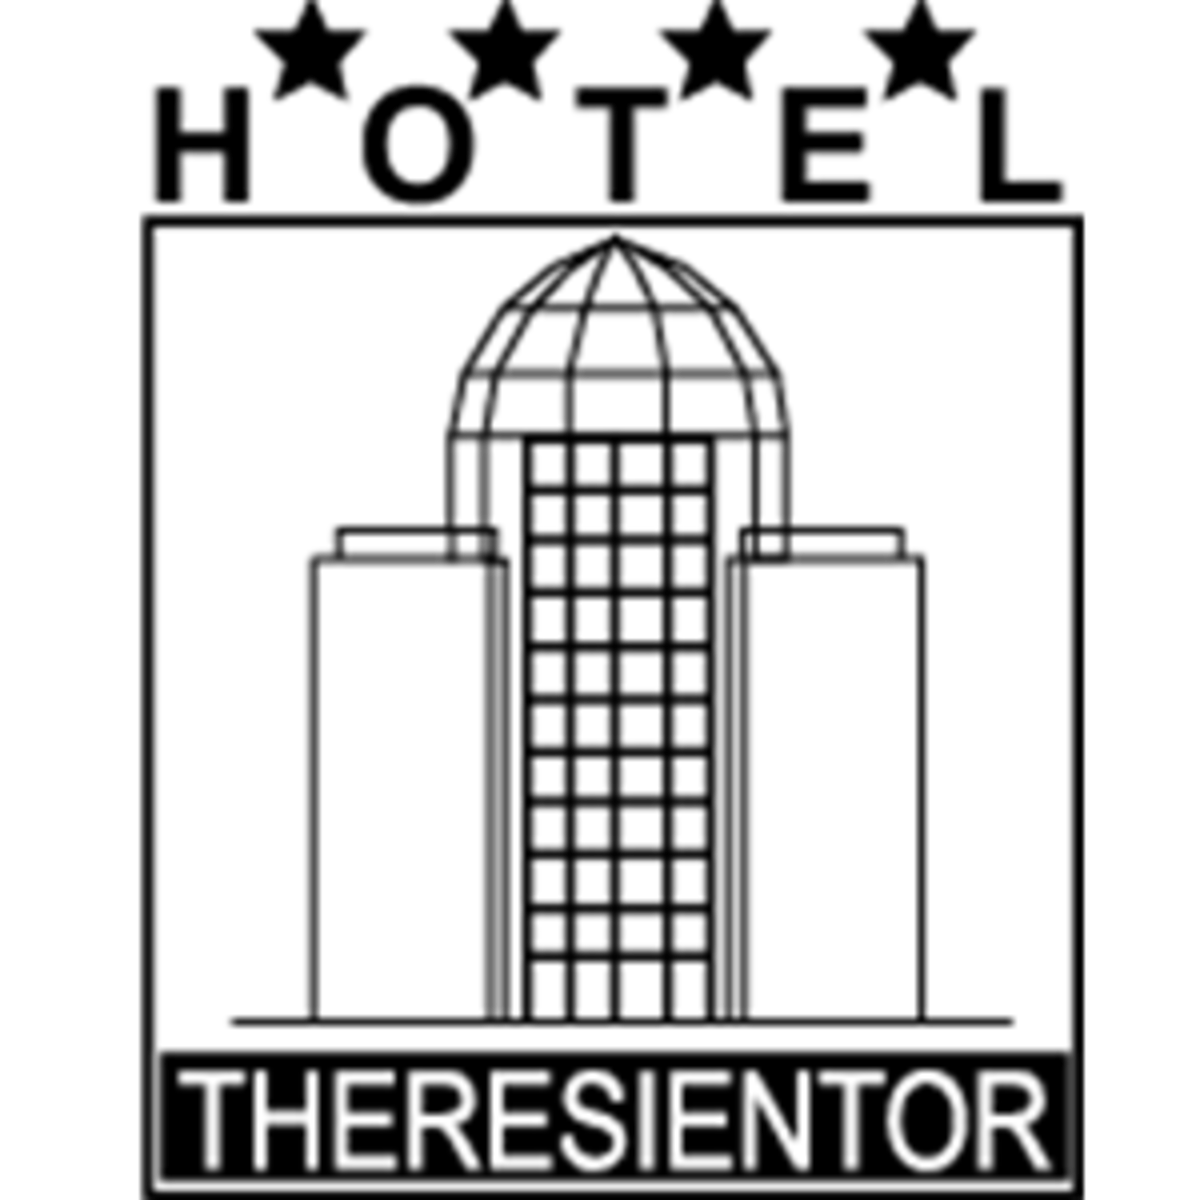 logo-hotel-theresientor-300x300px